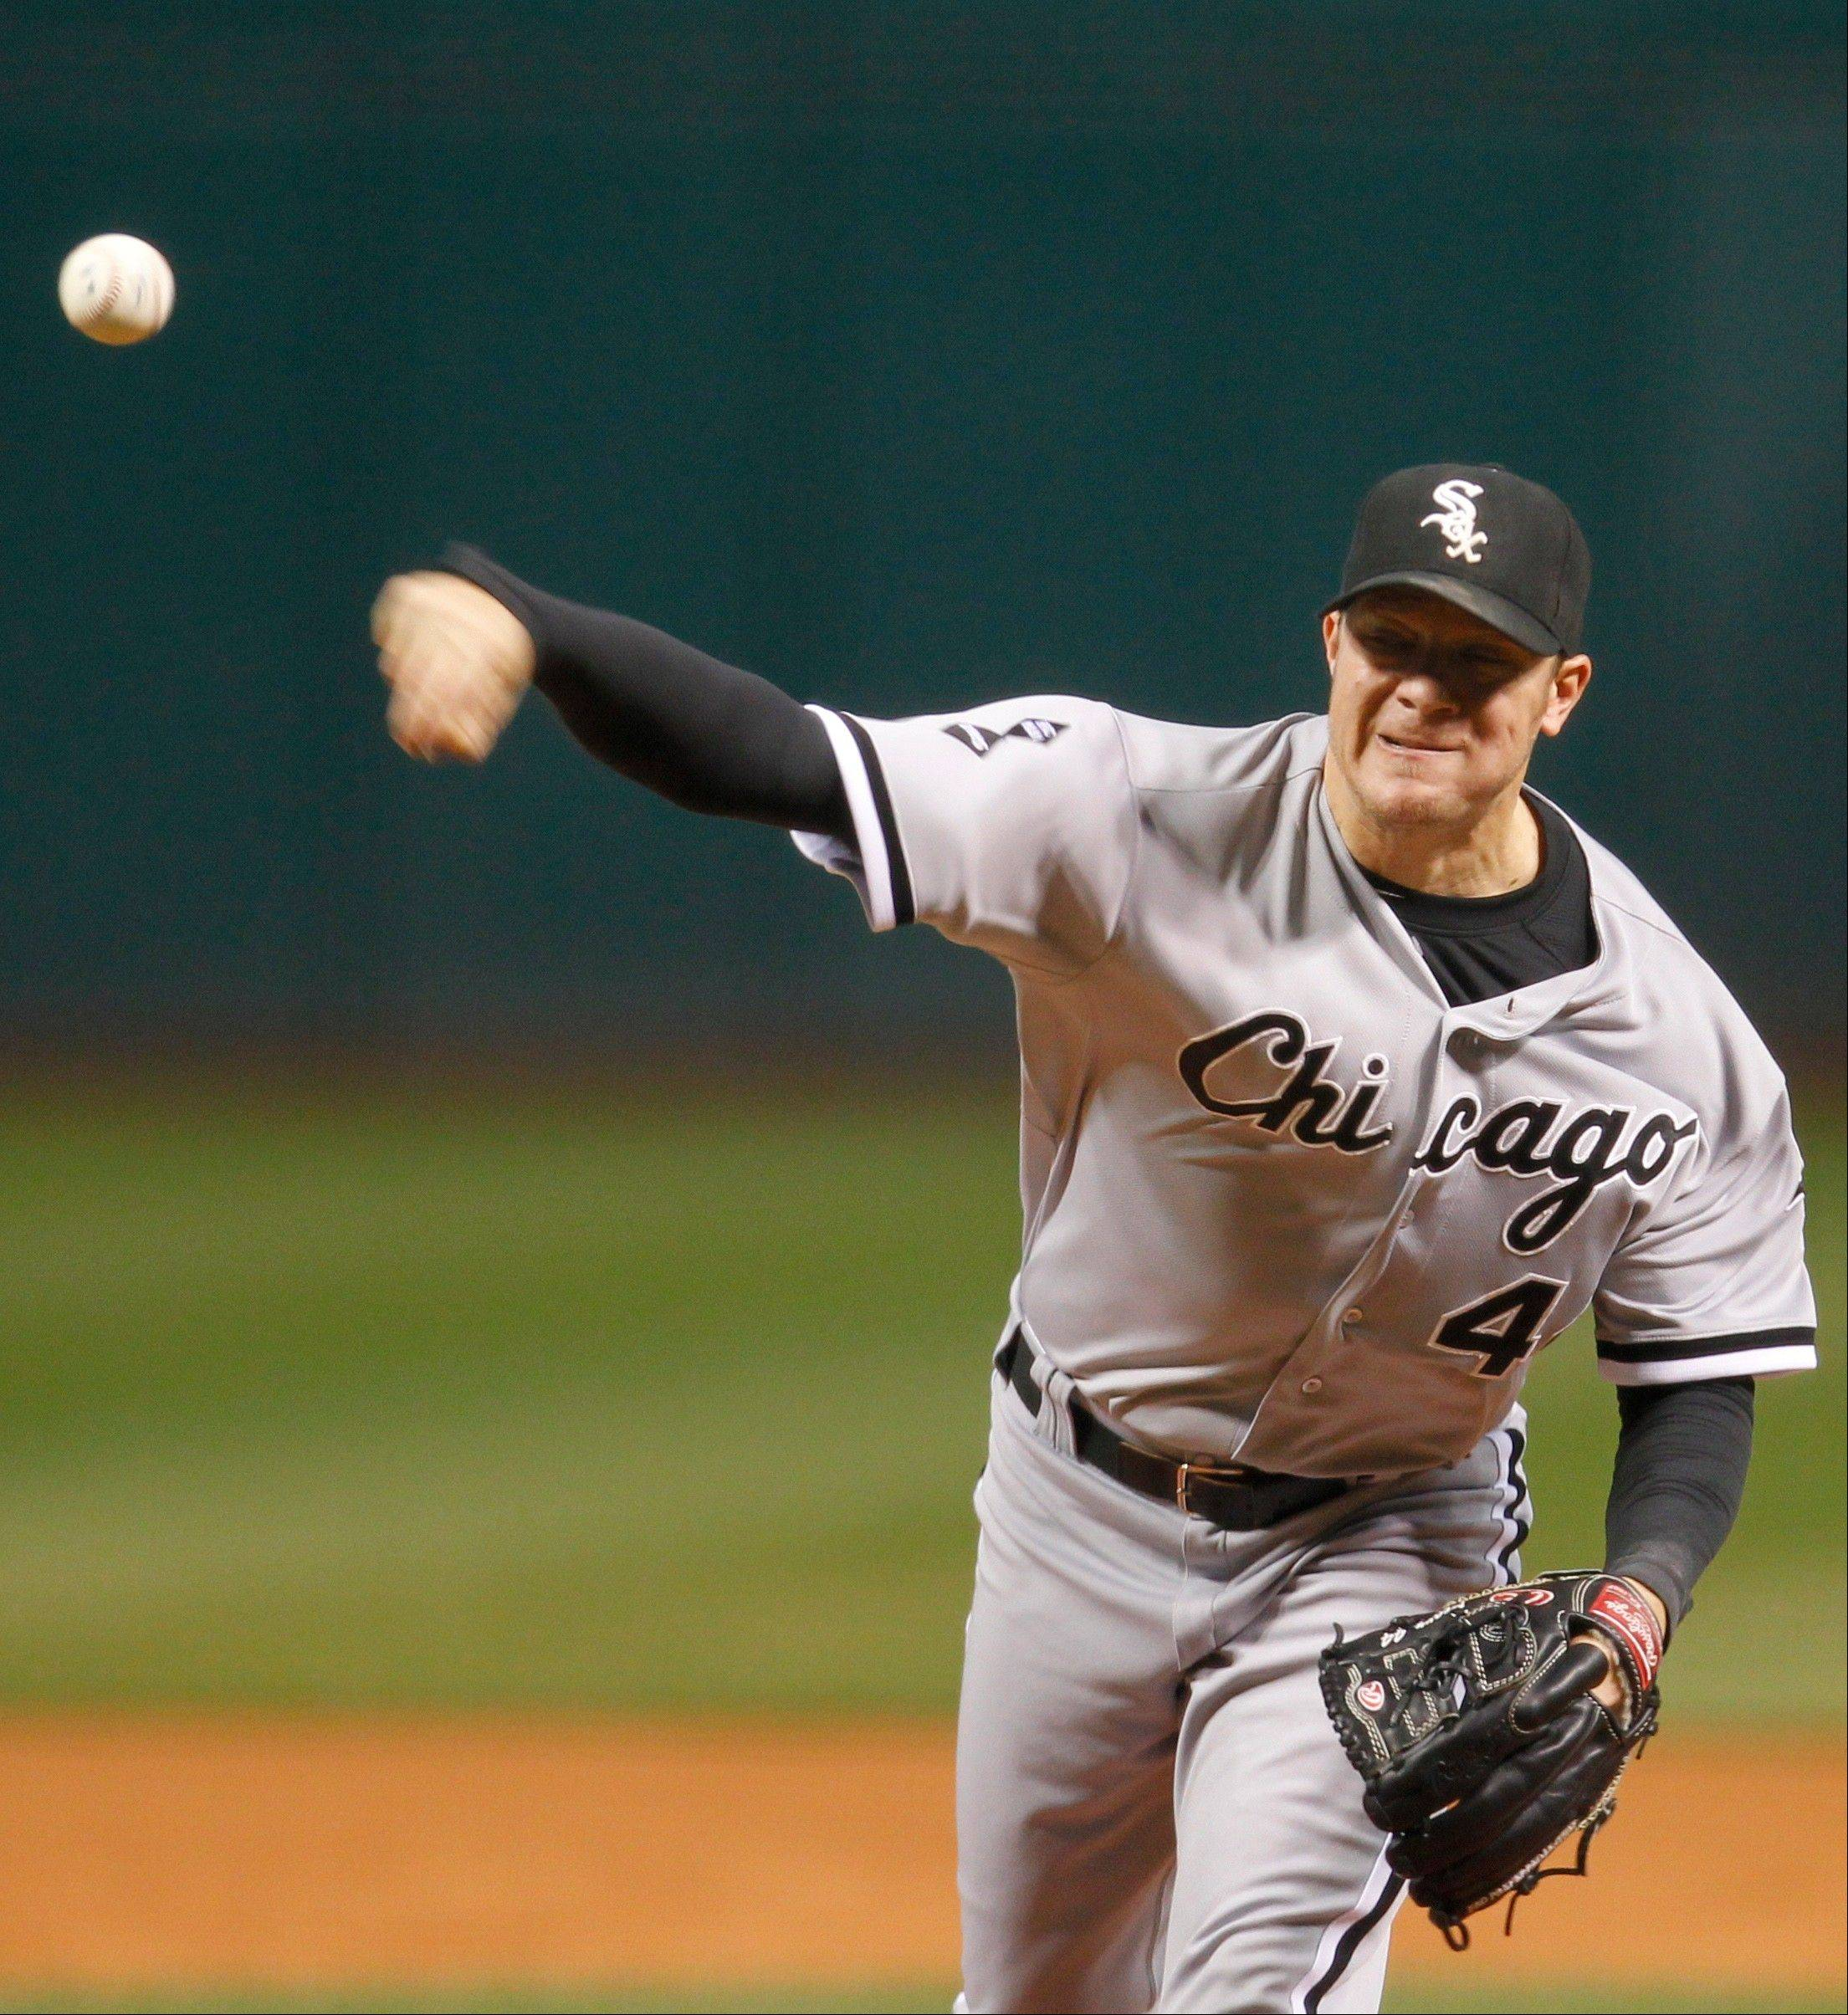 Chances are starting pitcher Jake Peavy won't be back with the White Sox next season.